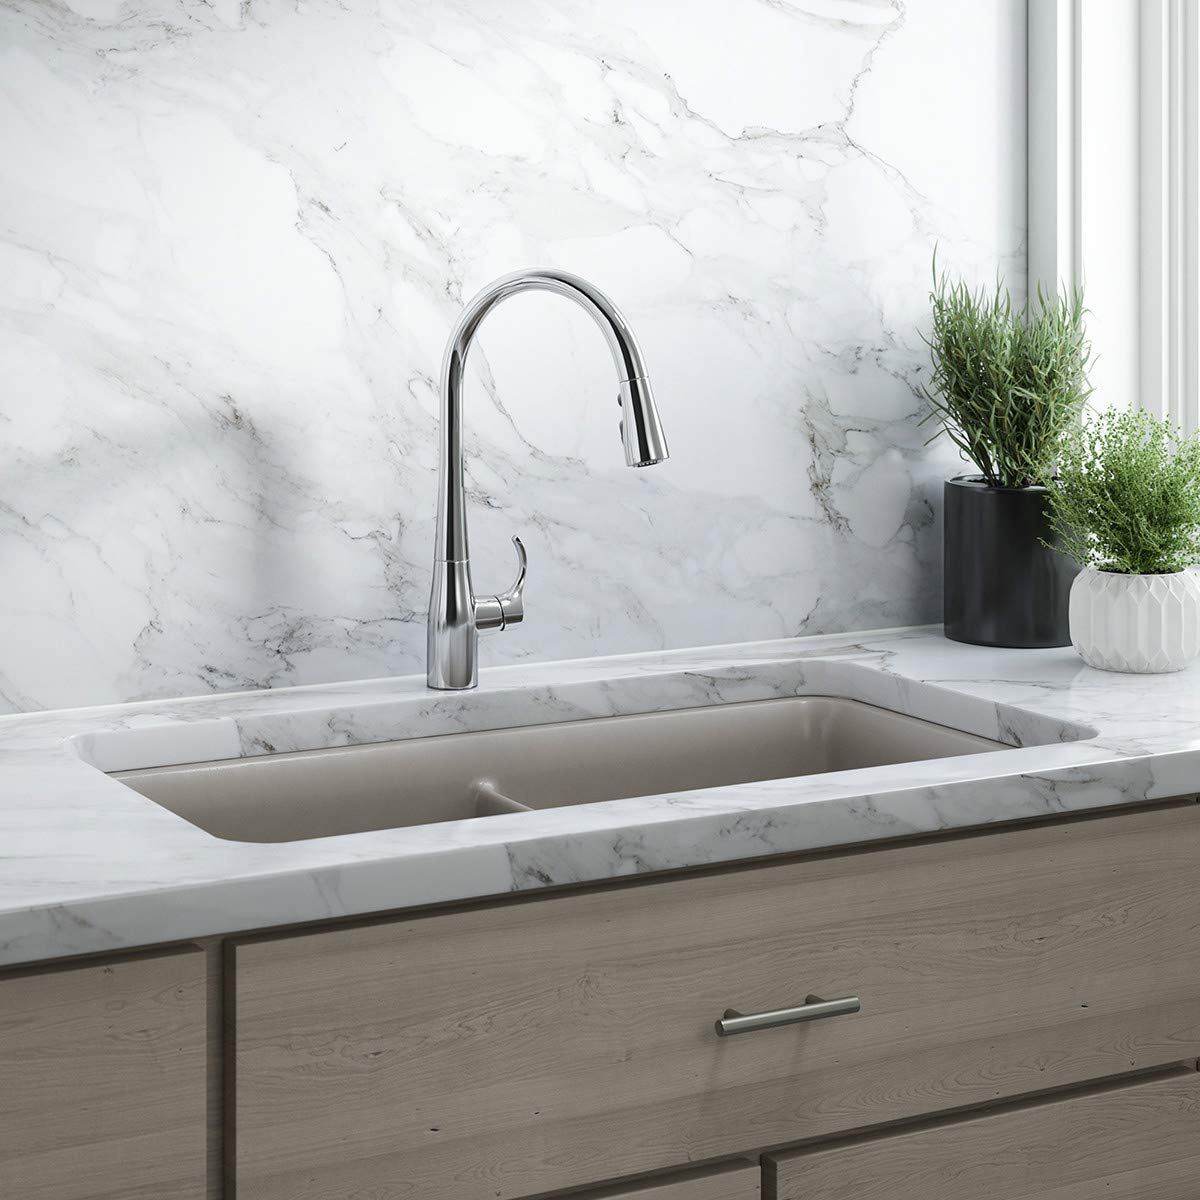 KOHLER K-596-CP Simplice High-Arch Single-Hole or Three-Hole, Single Handle, Pull-Down Sprayer Kitchen Faucet, Polished Chrome with 3-function Spray Head, Sweep Spray and Docking Spray Head Technology by Kohler (Image #3)